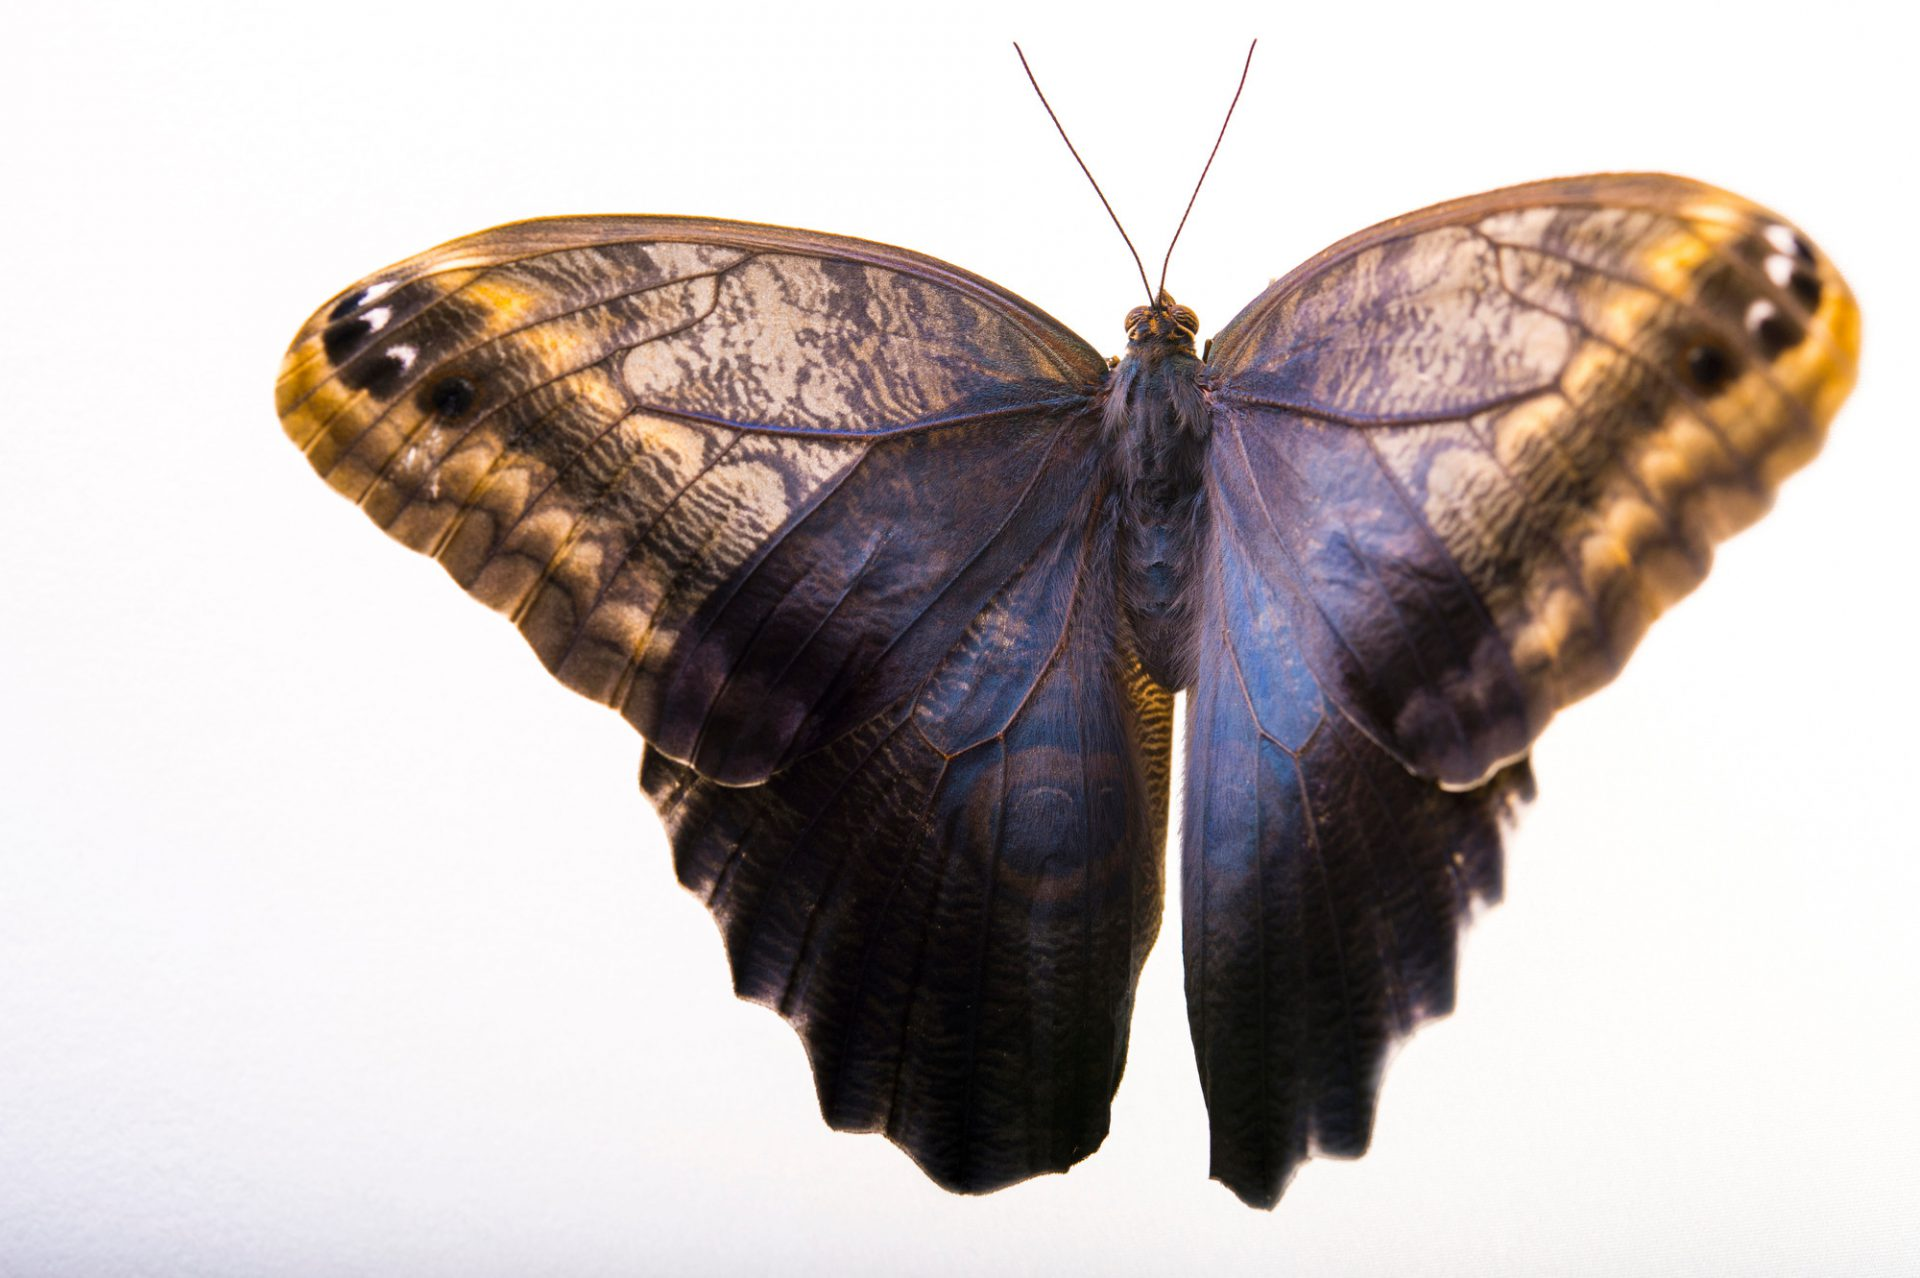 Picture of a Forest giant owl butterfly (Caligo eurilochus) at the Saint Louis Zoo.